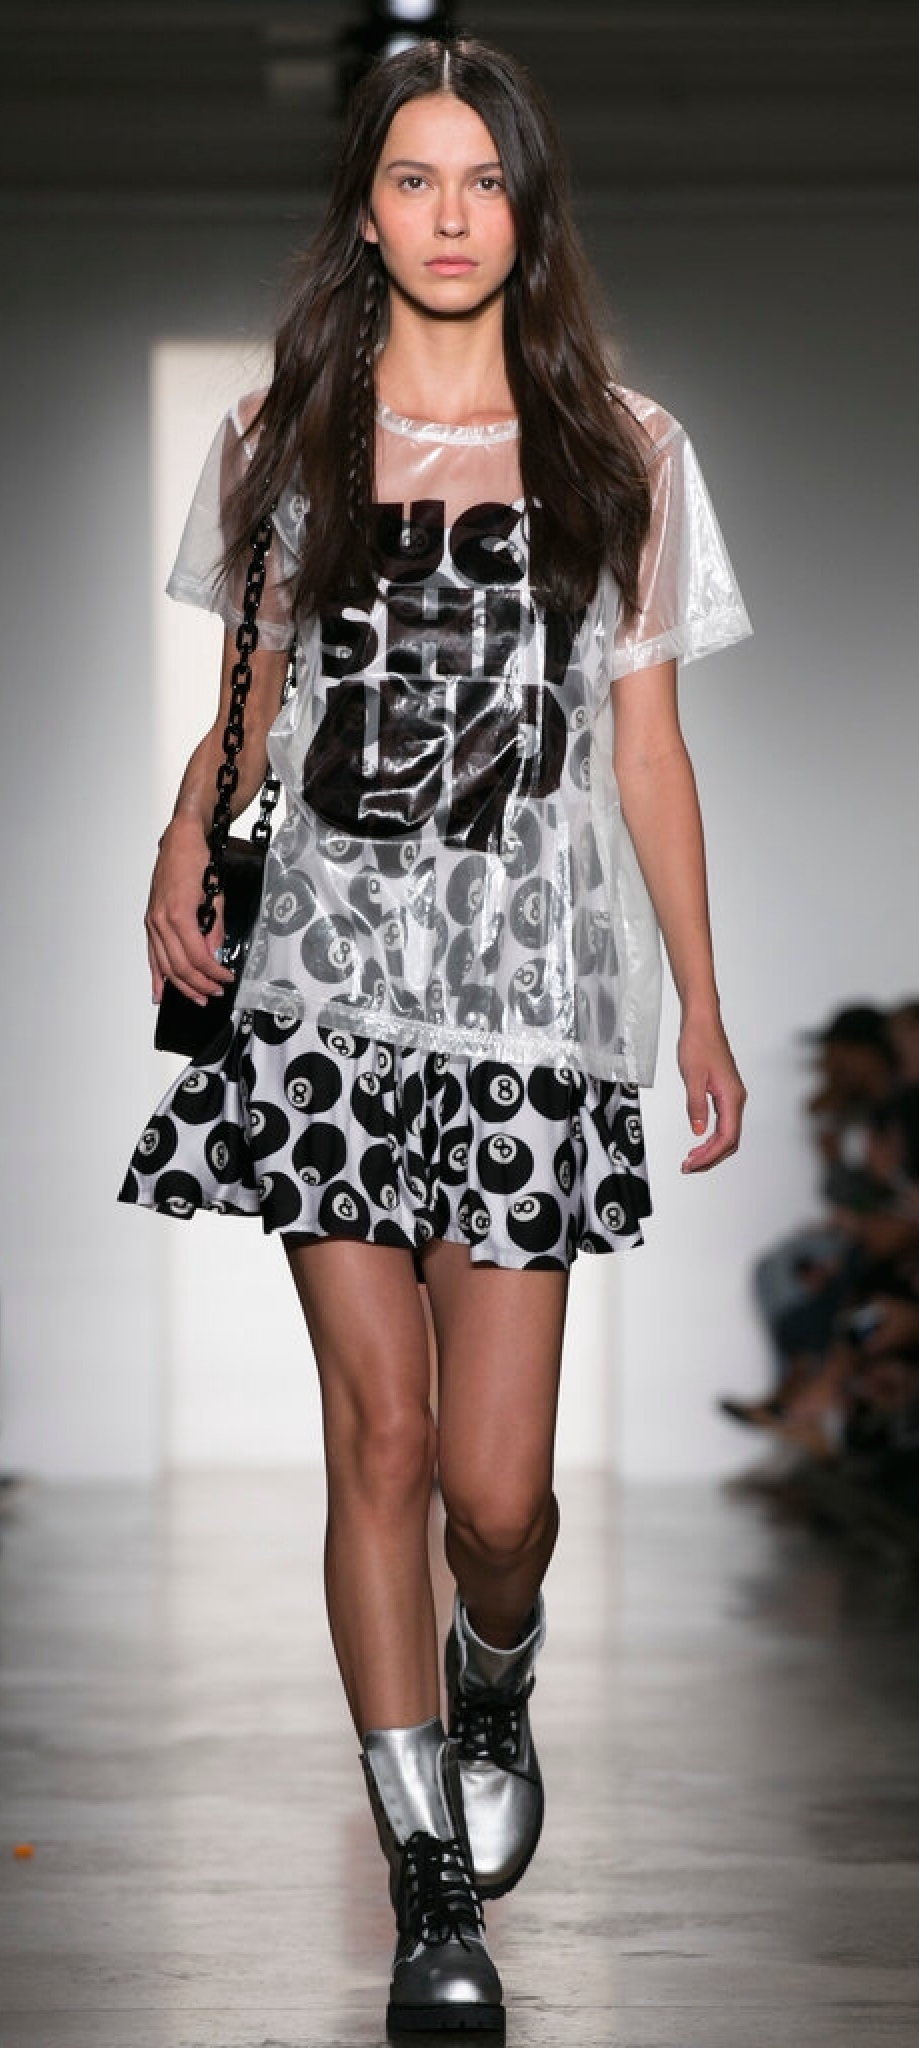 The shirt is completely transparent, but worn over a dress maintains its modesty...sans the message, of course. (Jeremy Scott)